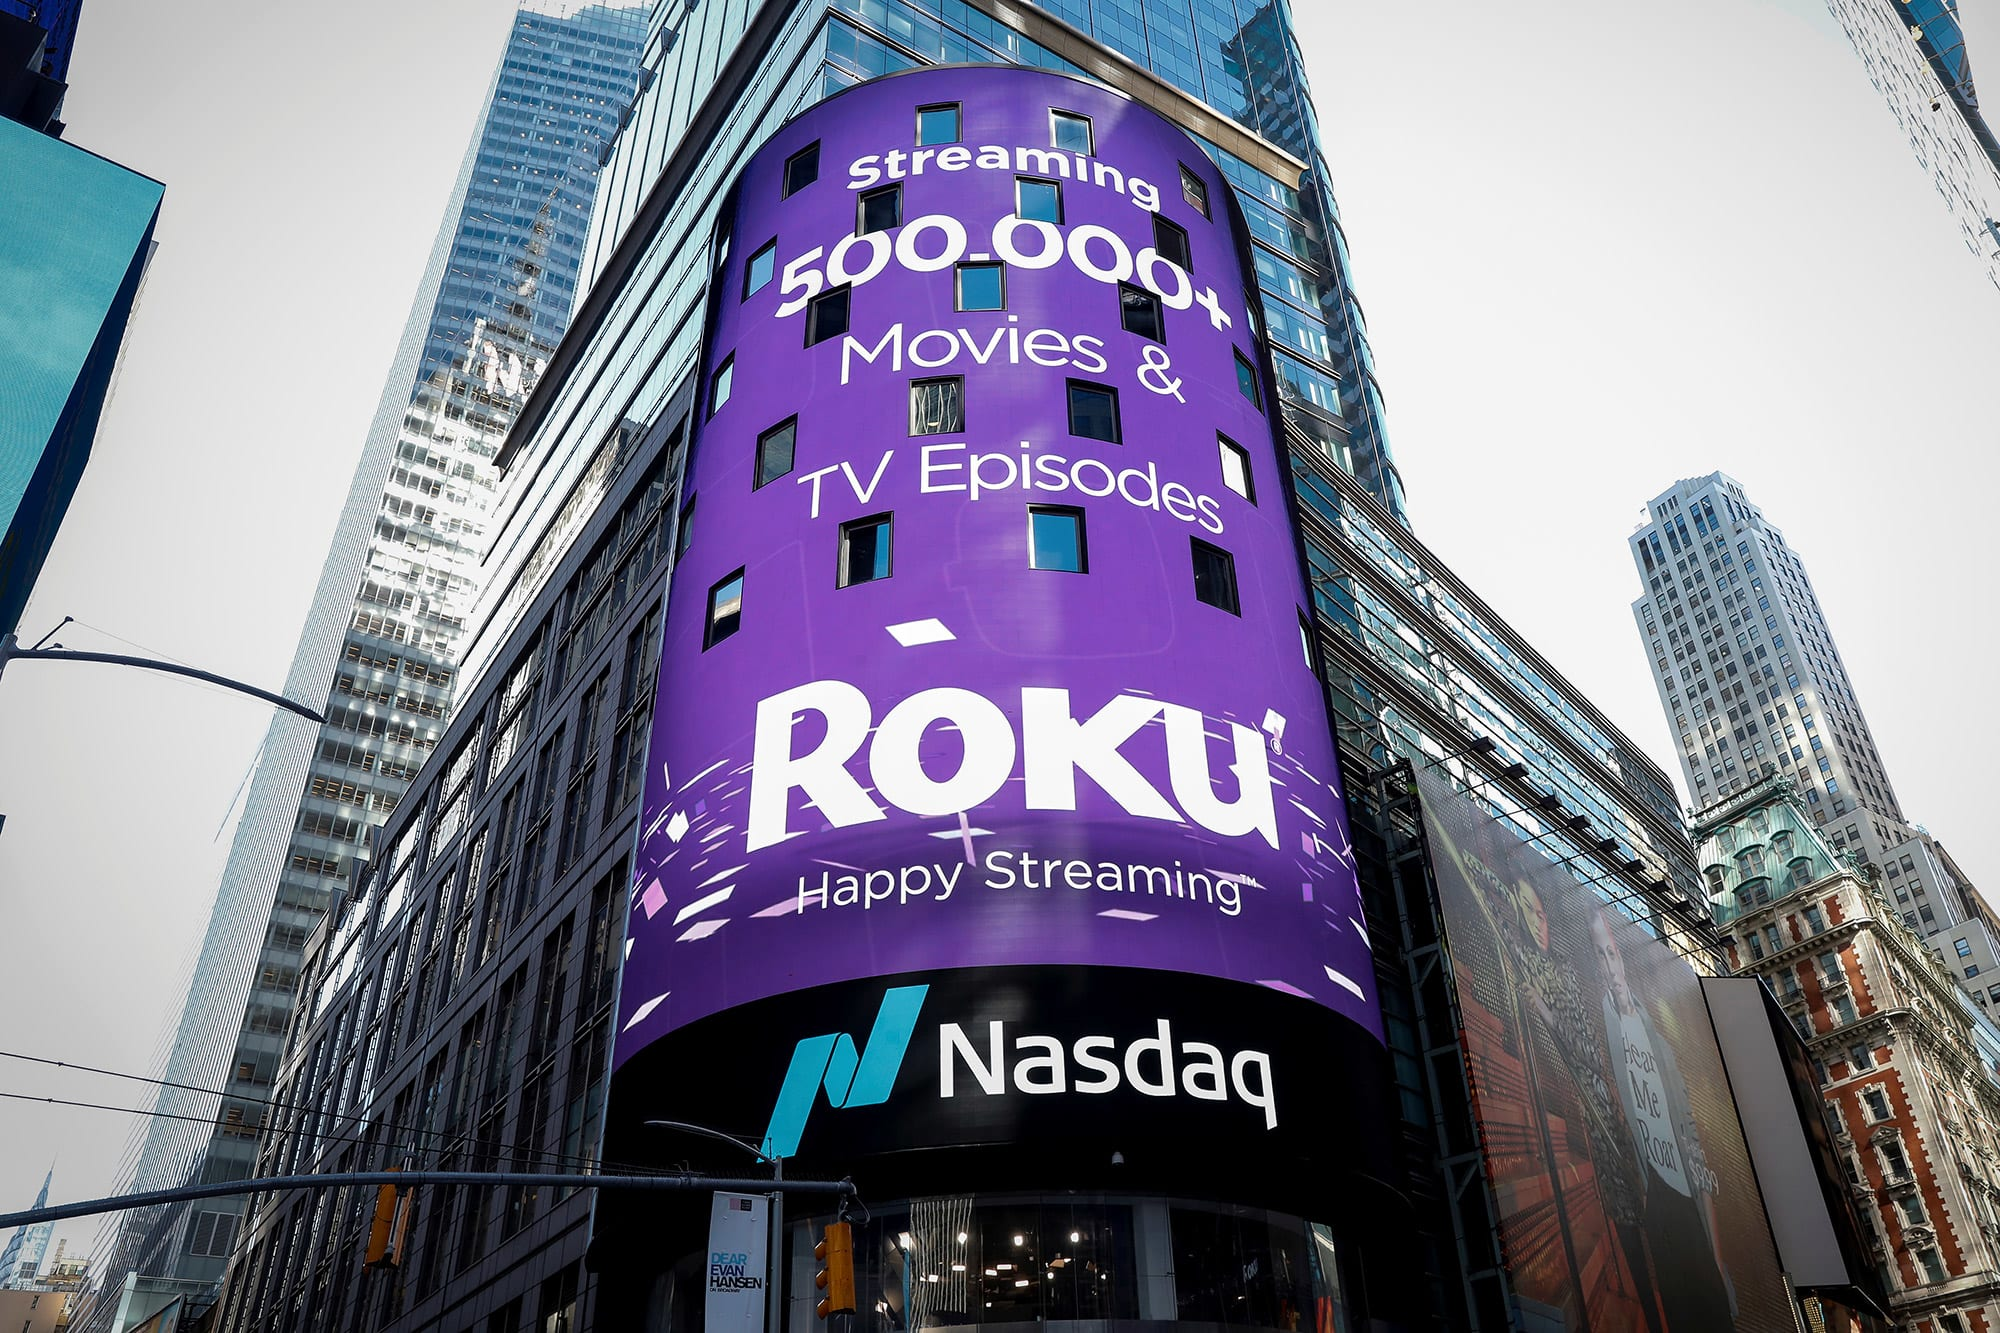 Morgan Stanley downgrades Roku, one of the hottest stocks of 2019: 'It's all priced in'